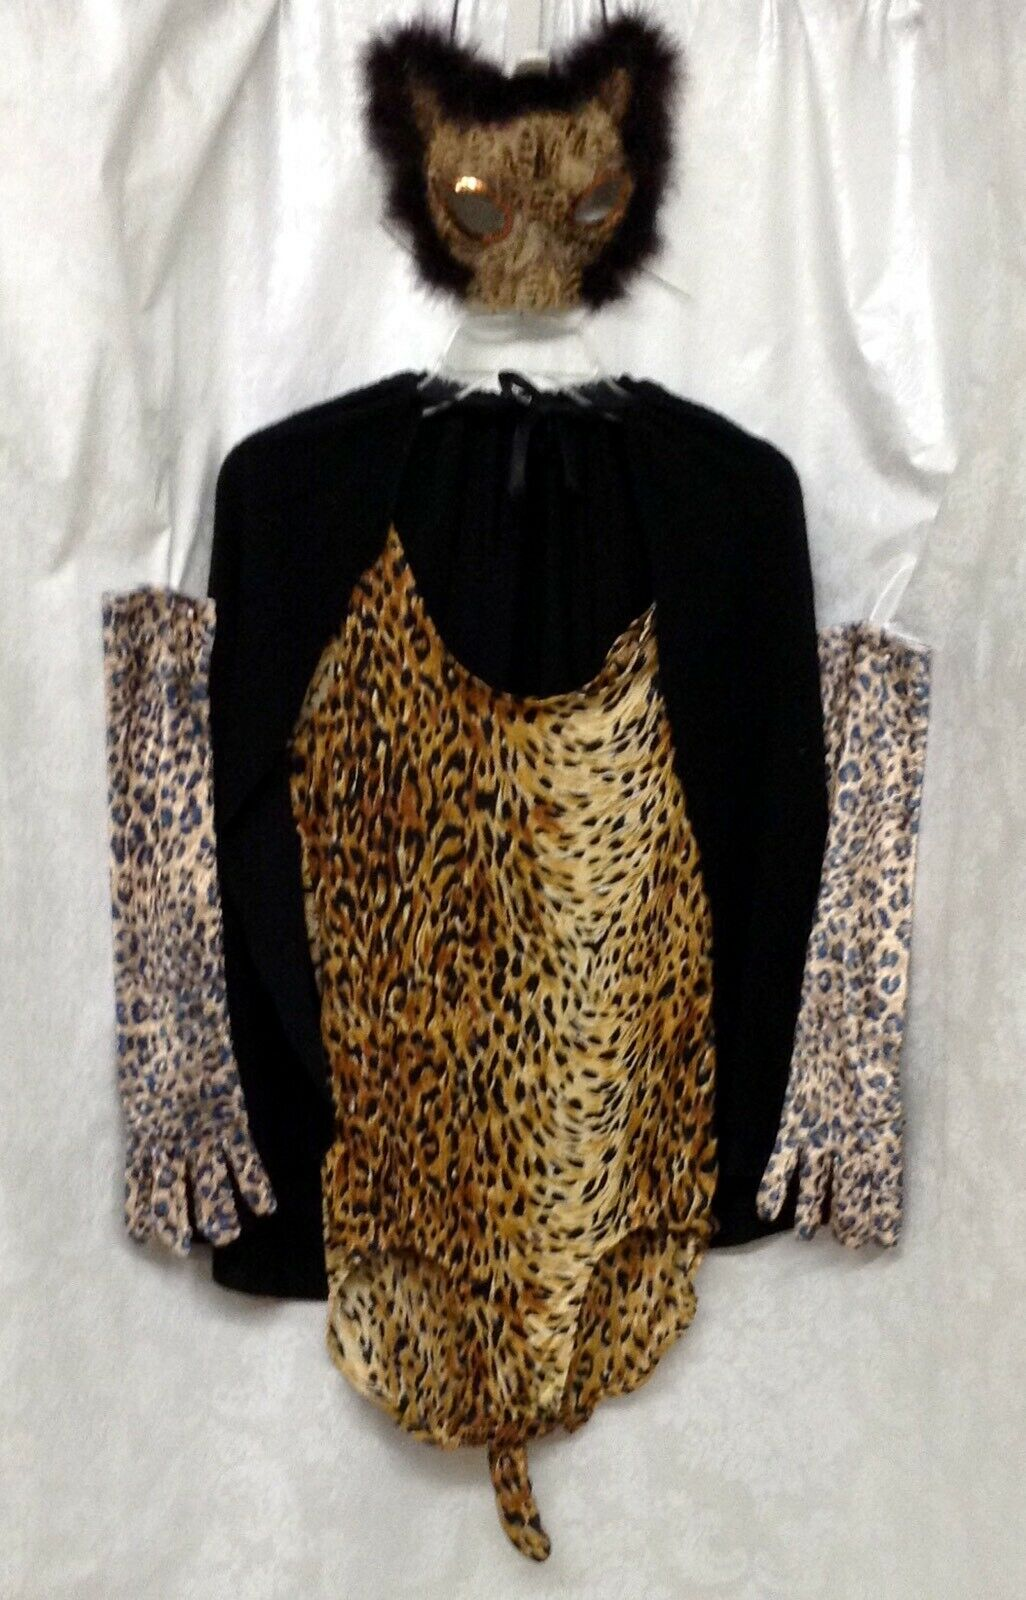 Sexy Spotted Cat Costume, Bodysuit, Cape, Gloves, 1/2 Mask, Size S/M